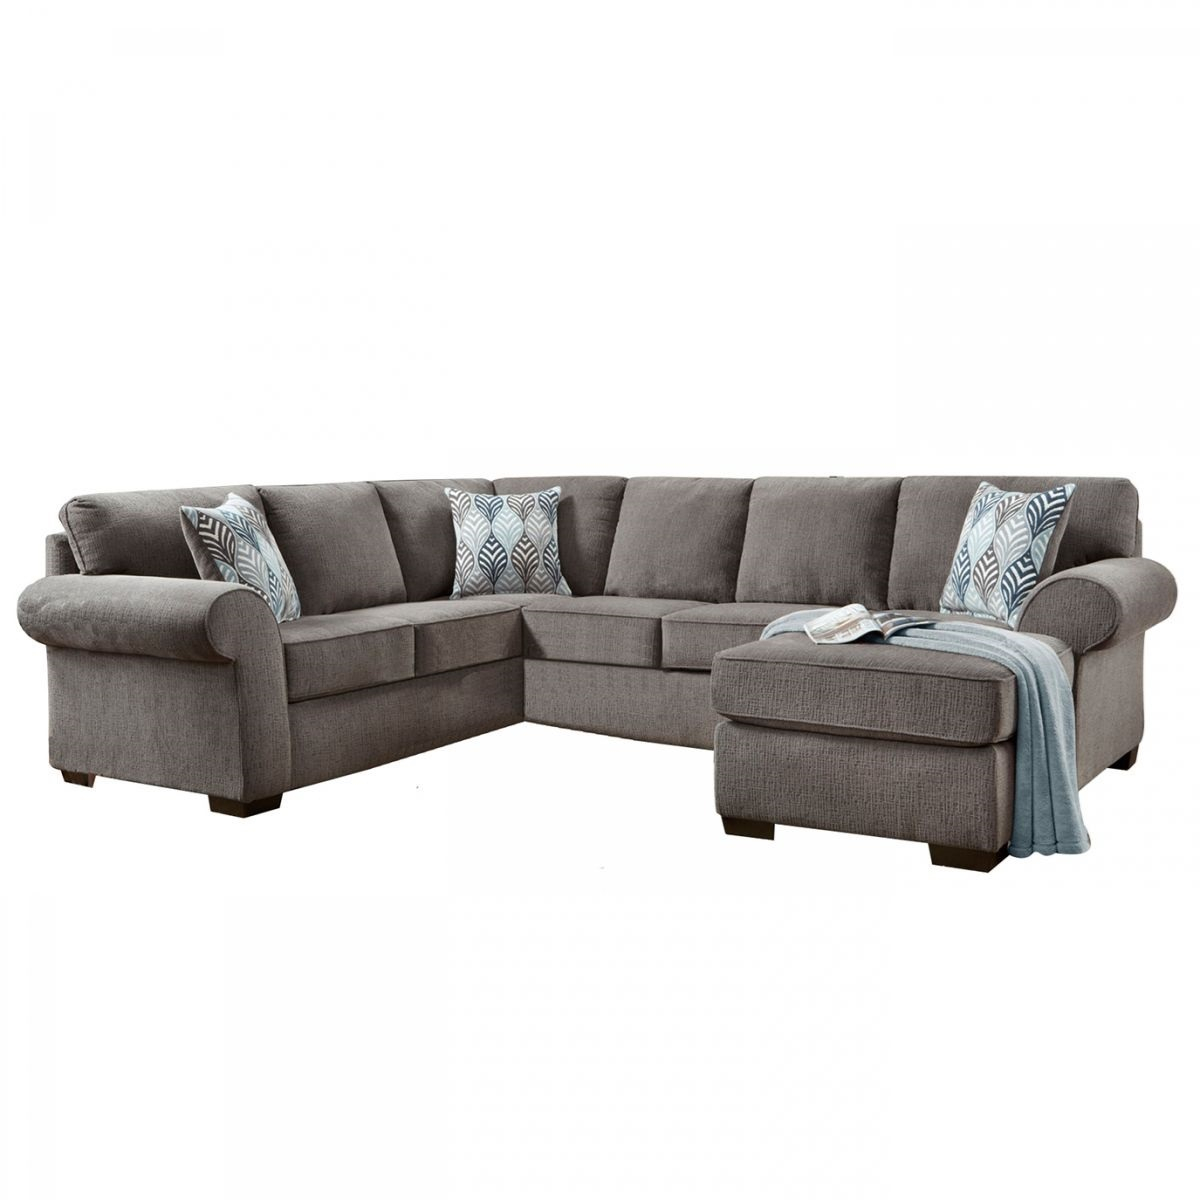 Sectional Sofa Sets Large Small Couches Grey – Locsbyhelenelorasa With Regard To Mcdade Graphite Sofa Chairs (View 21 of 25)